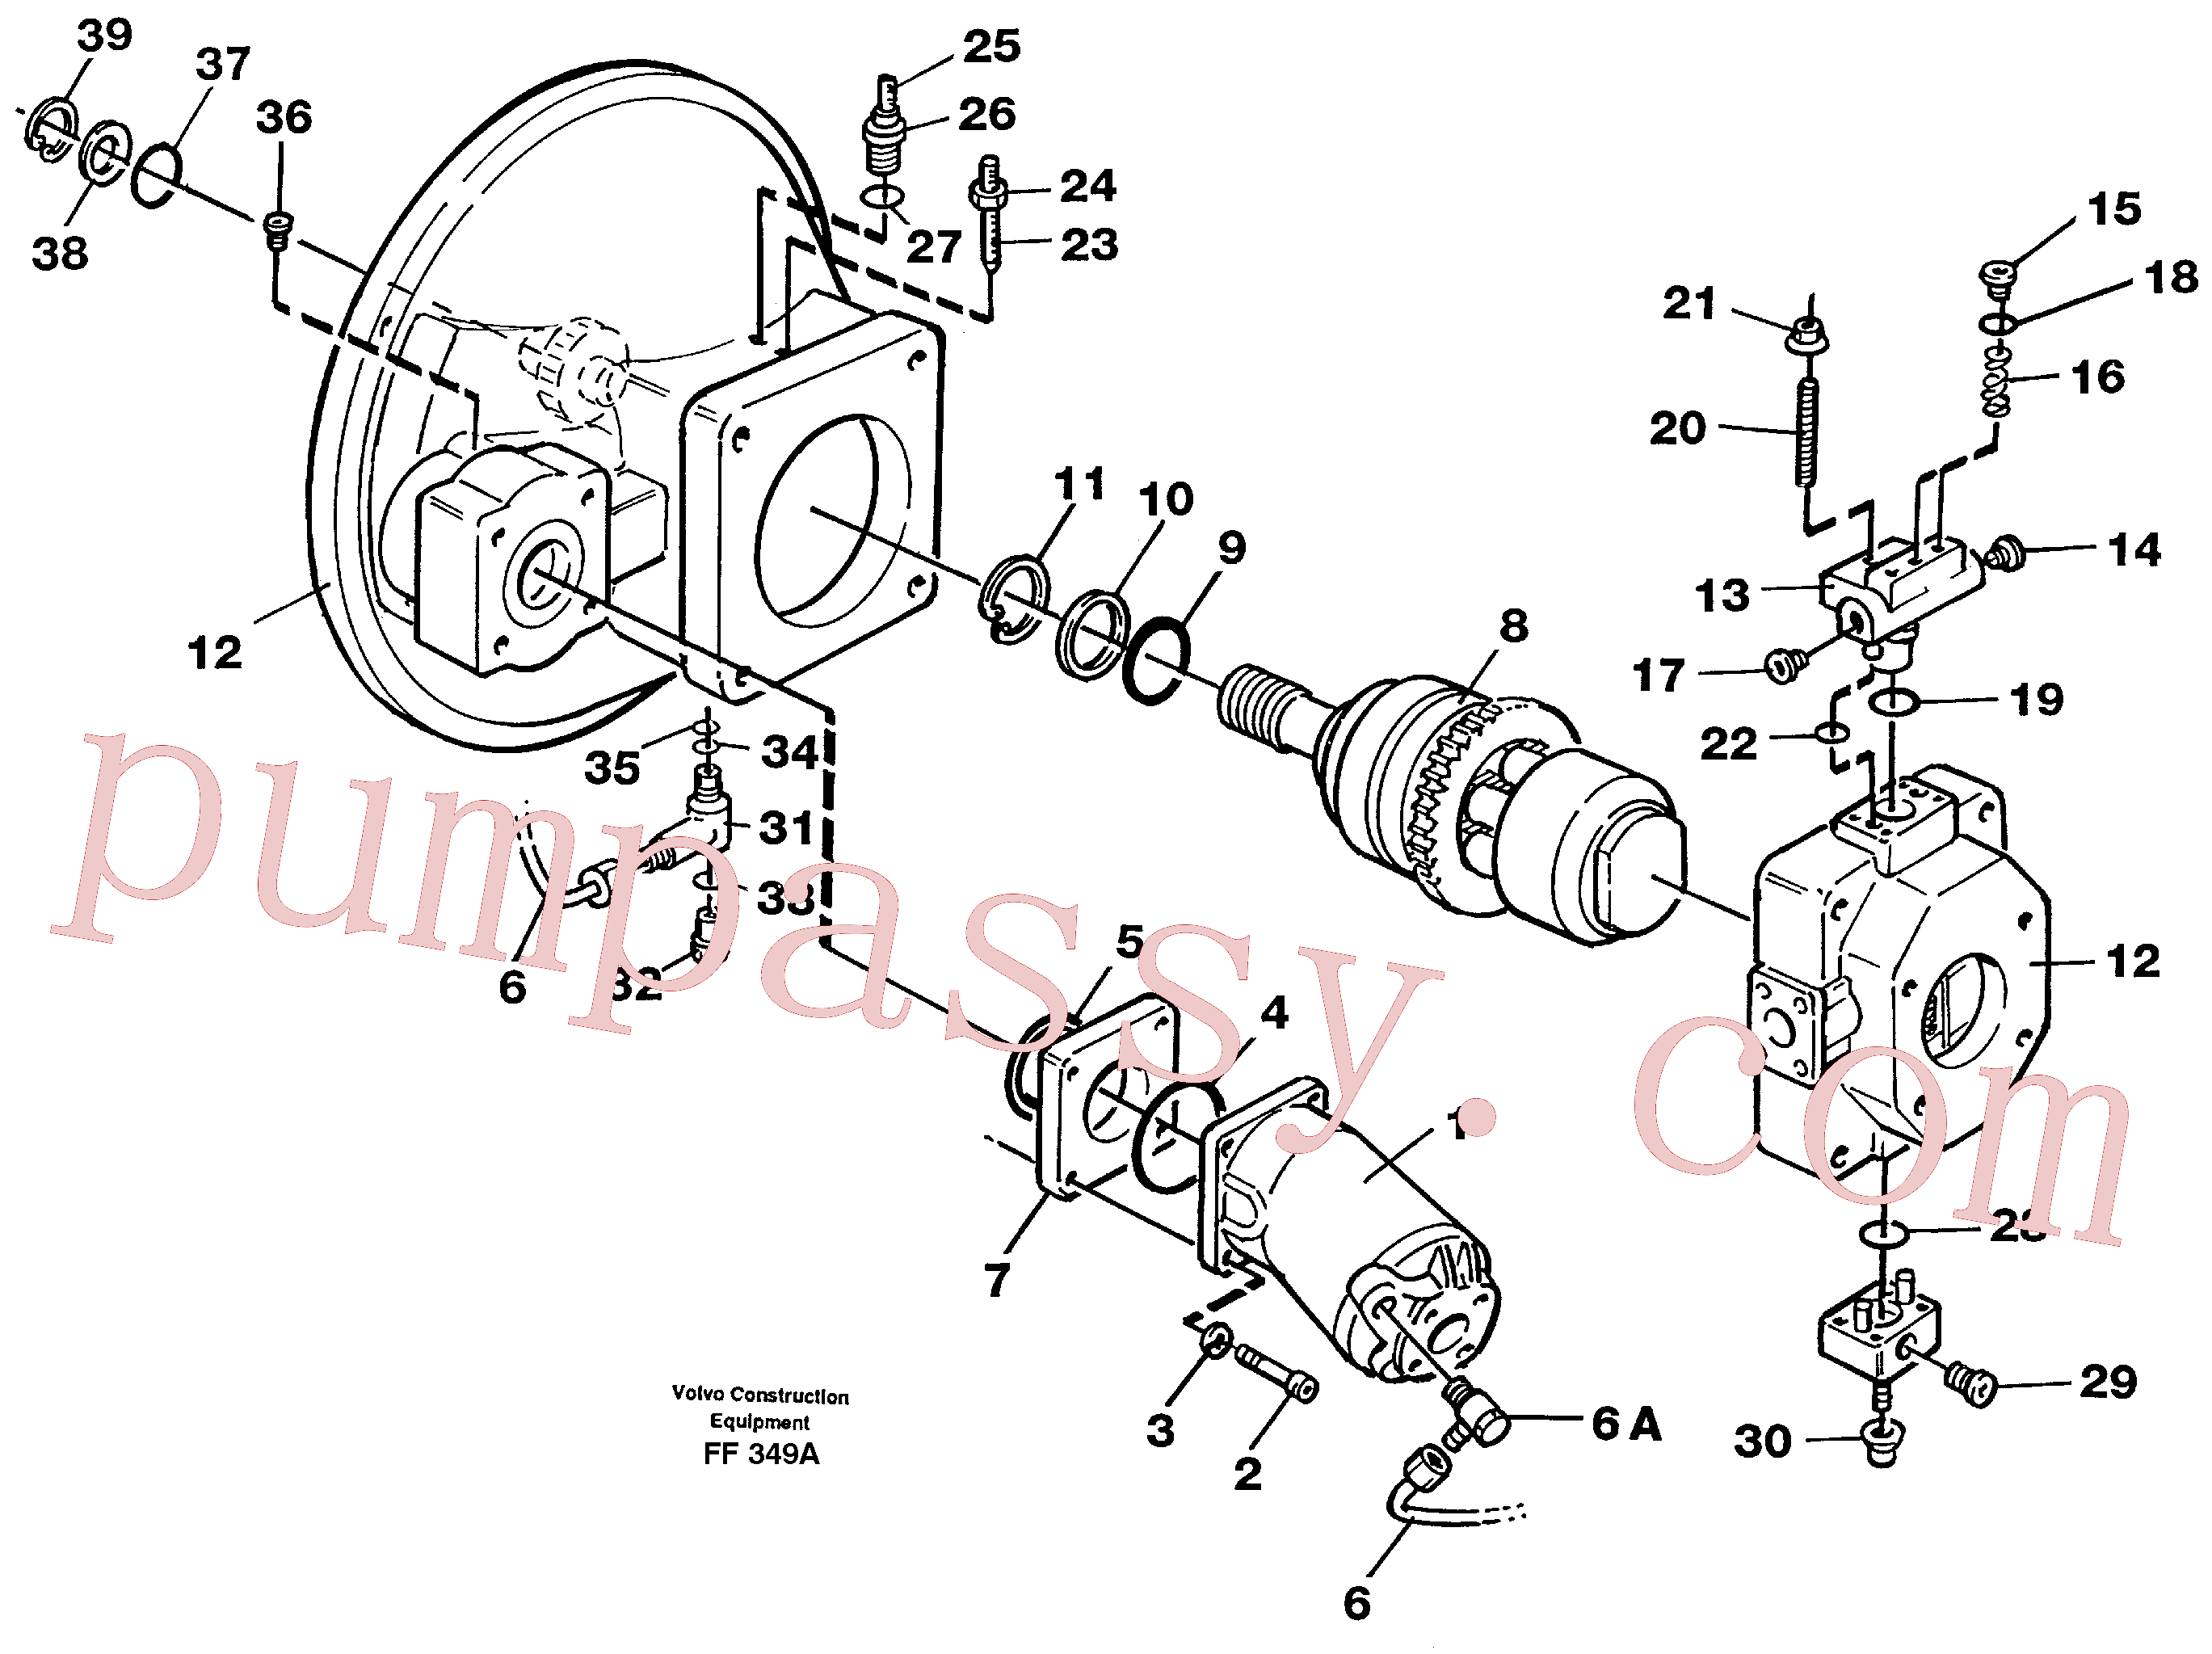 VOE14016903 for Volvo Pump gear box(FF349A assembly)